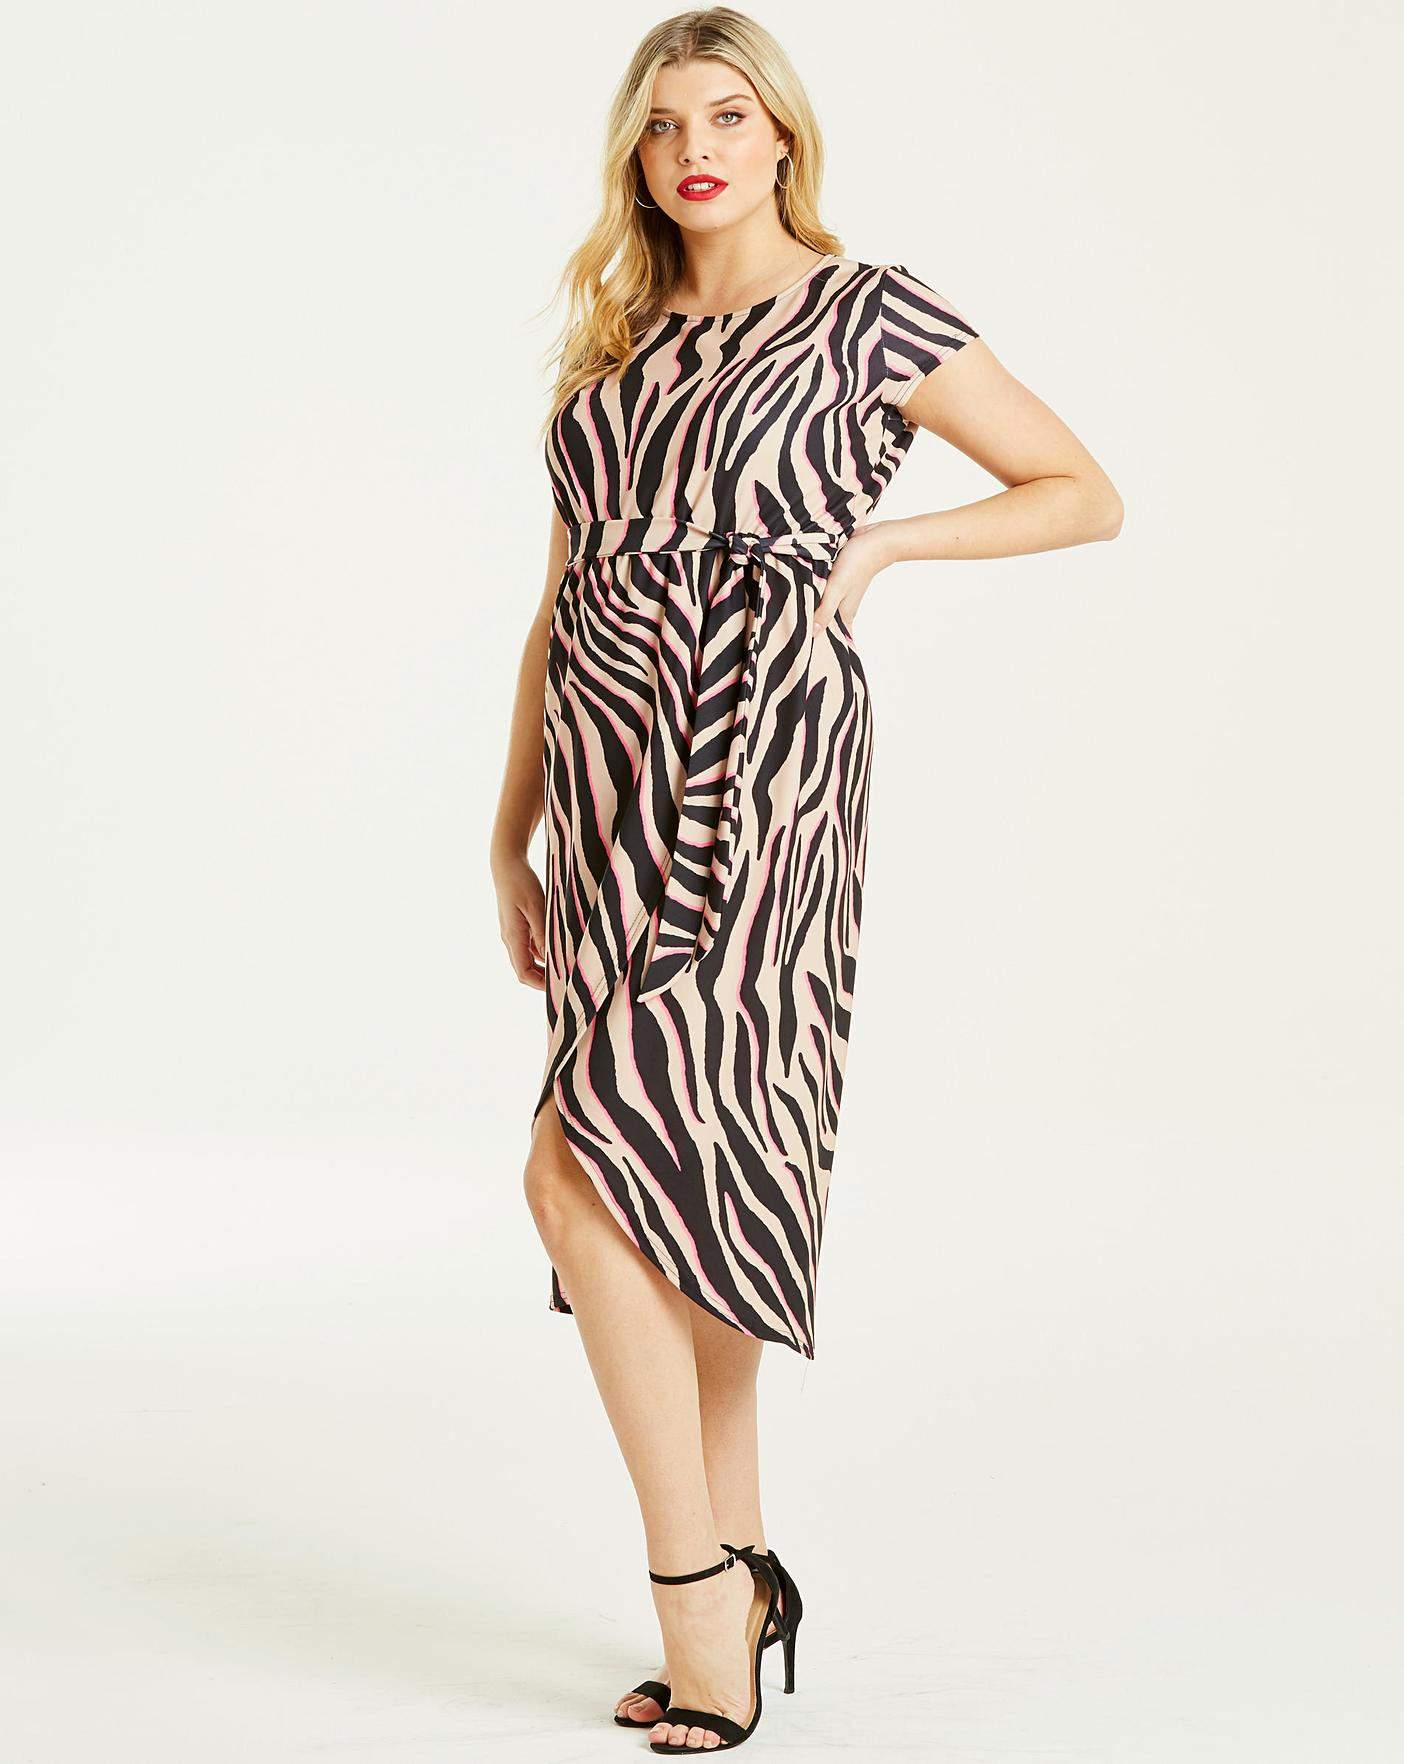 6c52d0ffee Description. Bang on trend! This pink zebra print wrap dress by Quiz ...